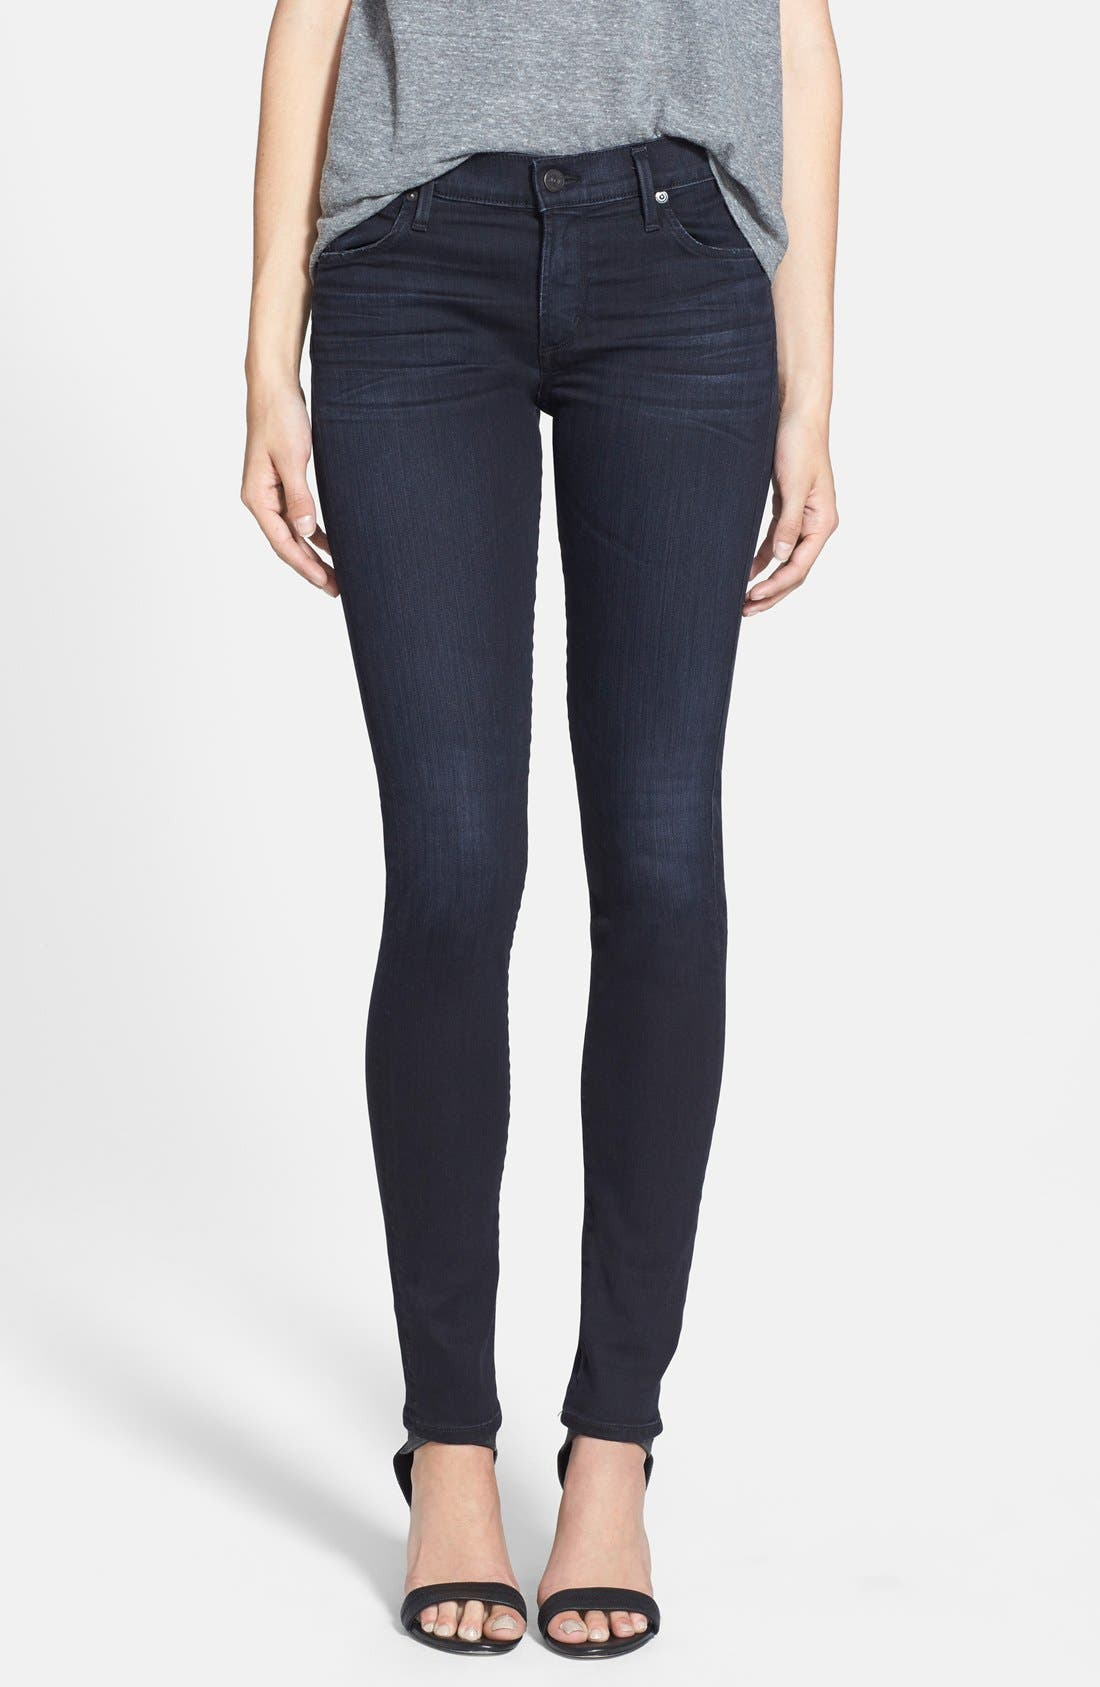 Alternate Image 1 Selected - Citizens of Humanity 'Avedon' Ultra Skinny Jeans (Carnaby)